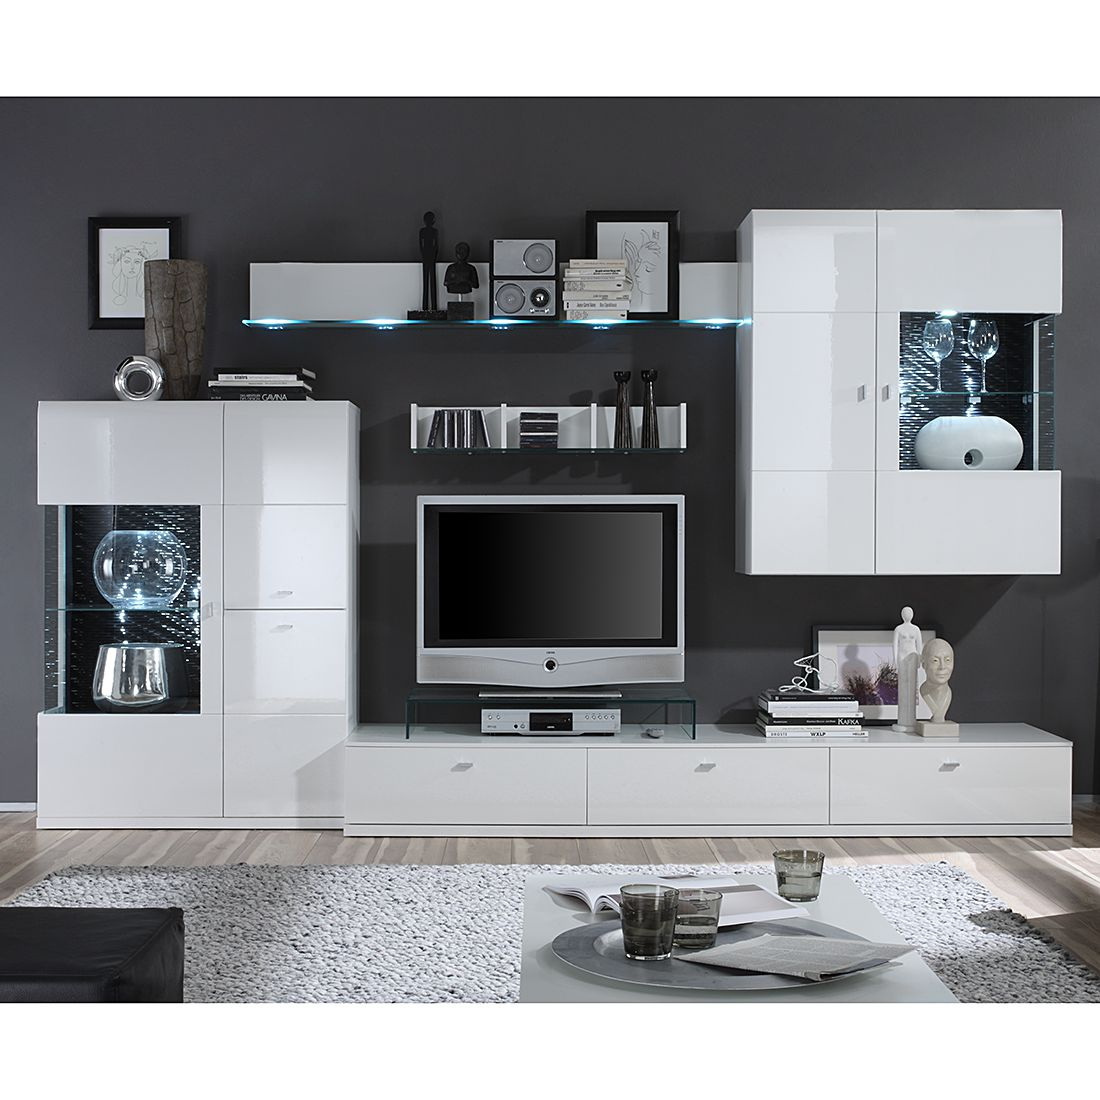 wohnwand tesseo i 4 teilig hochglanz wei absetzung schwarz wohnwand 4 teilig ohne. Black Bedroom Furniture Sets. Home Design Ideas